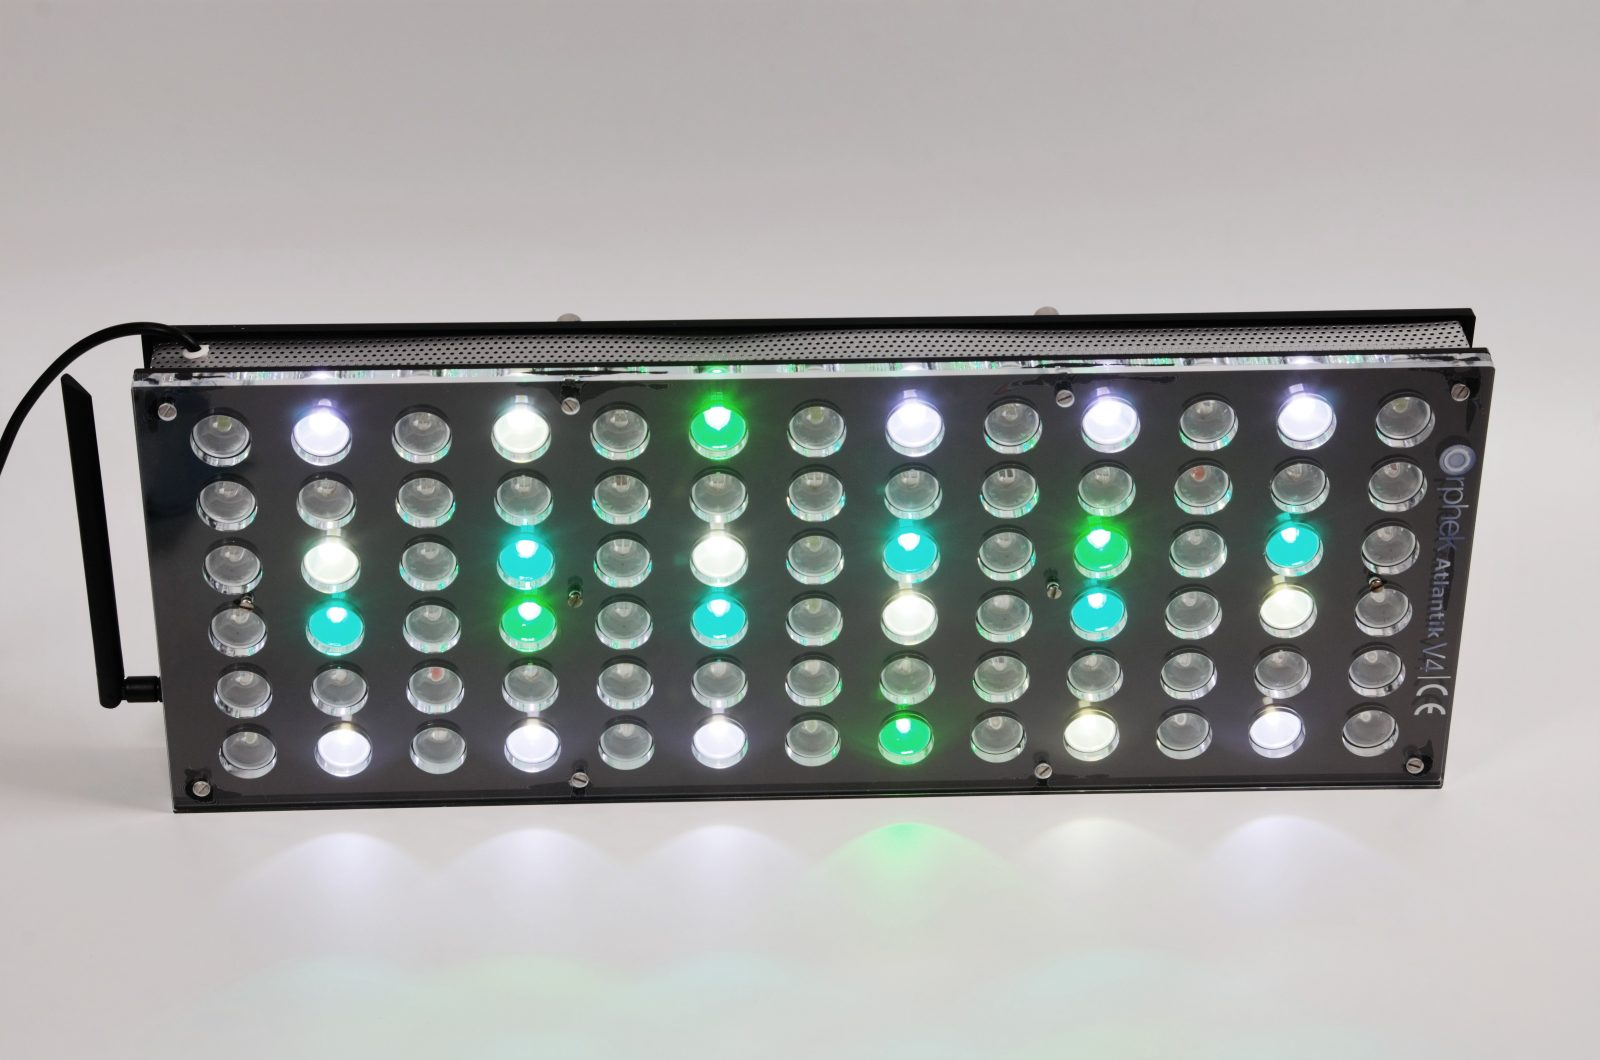 Orphek-Aquarium-LED-Lighting-Reef-Atlantik-V4-אור בערוץ 1